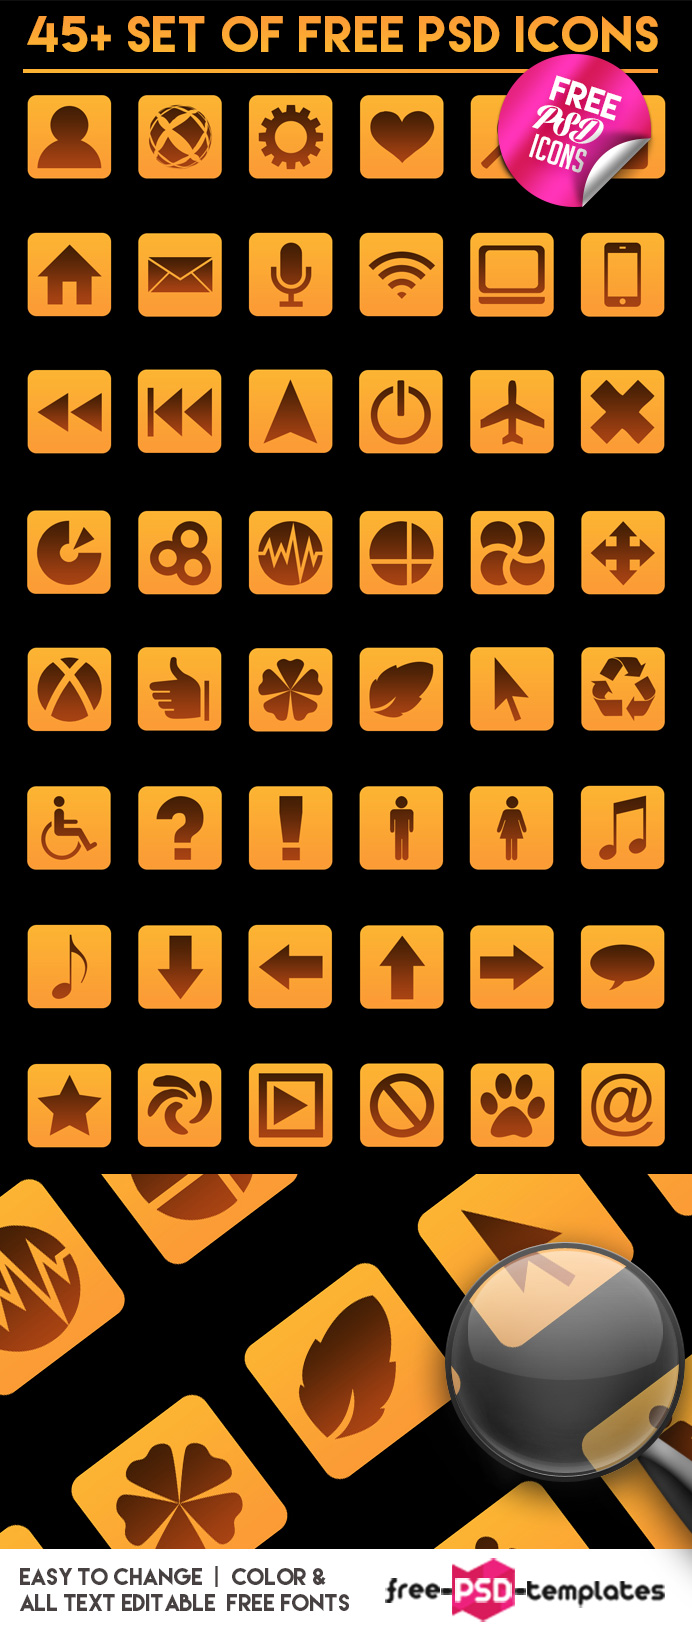 Preview_45+Set_of_Free_PSD_Icons